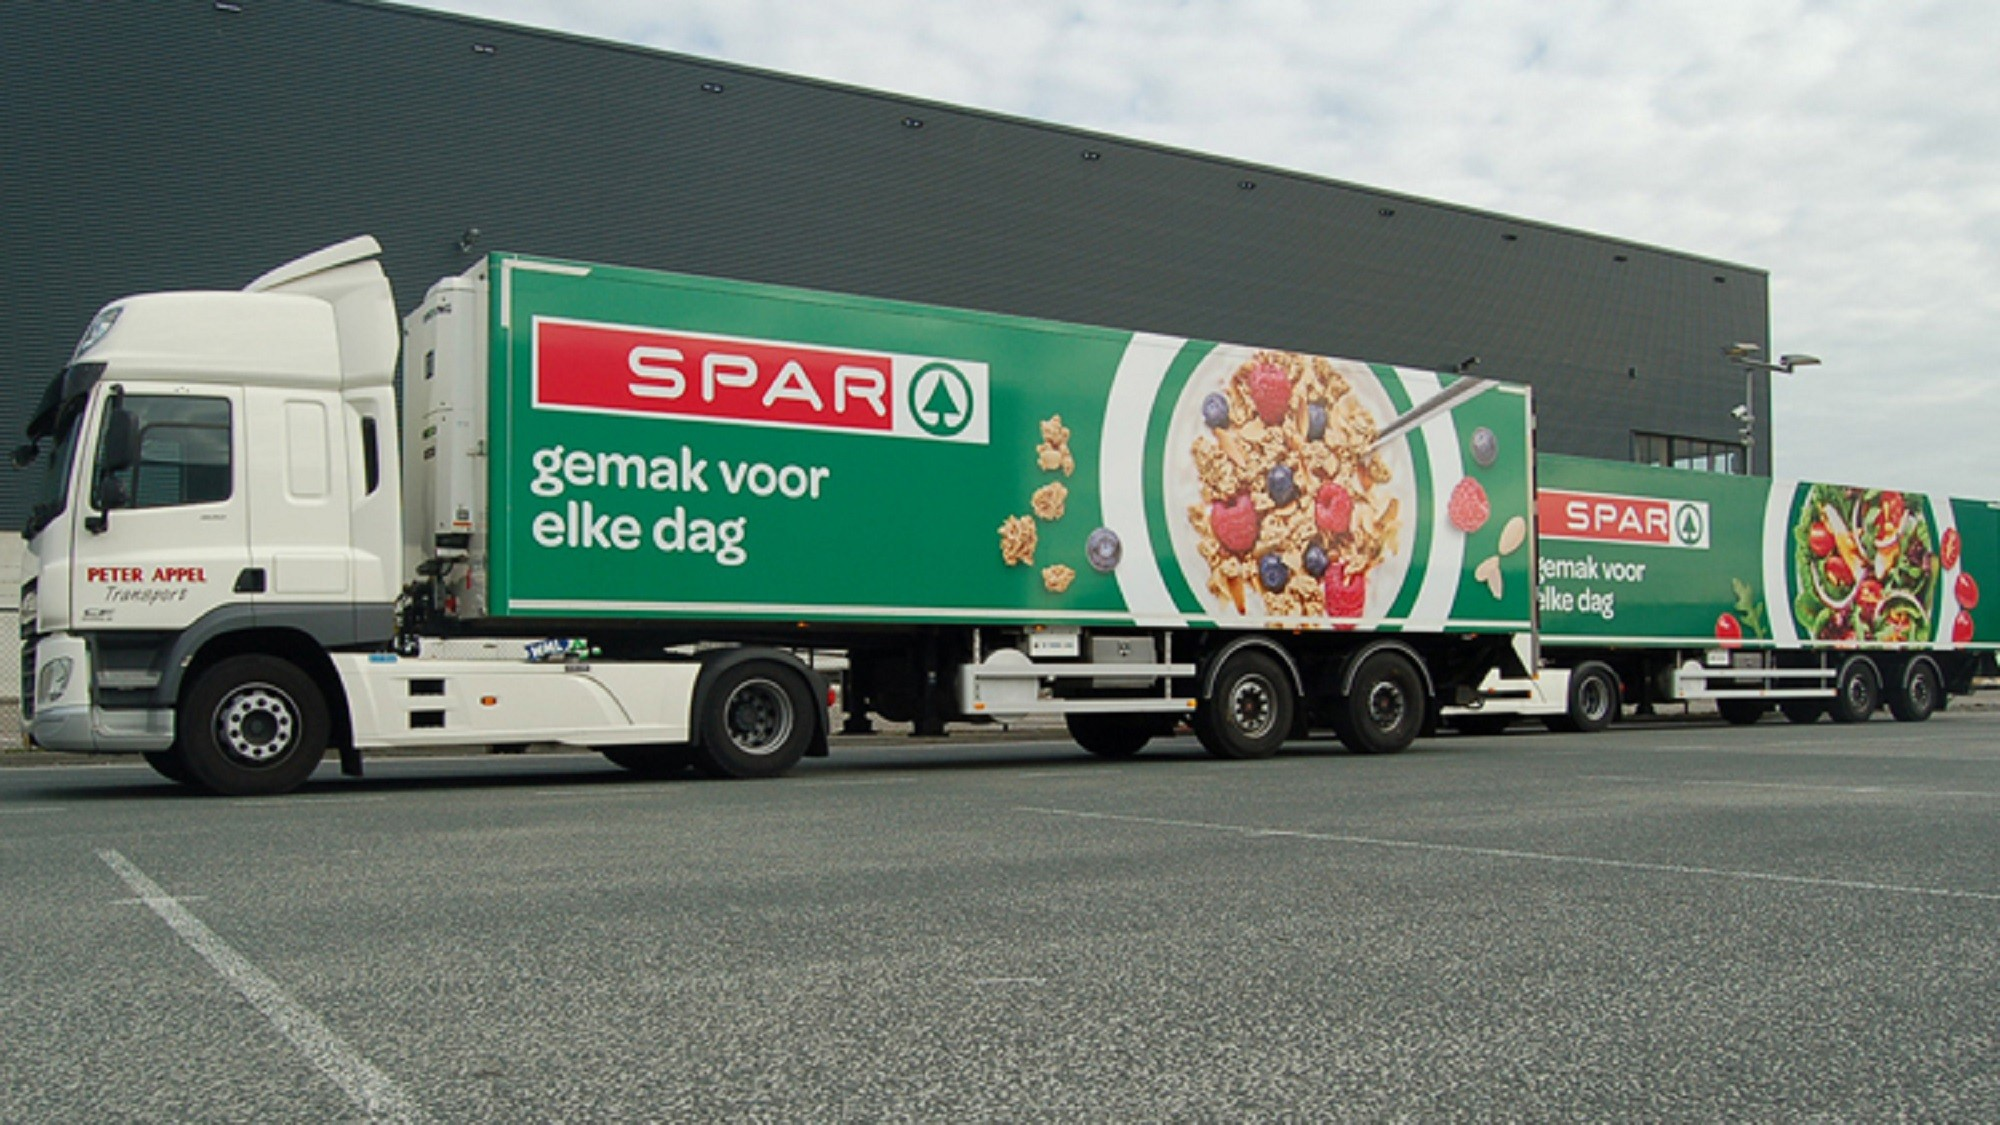 NL-2-Newly-branded-SPAR-trucks-have-been-rolled-out-in-the-Netherlands-750x500